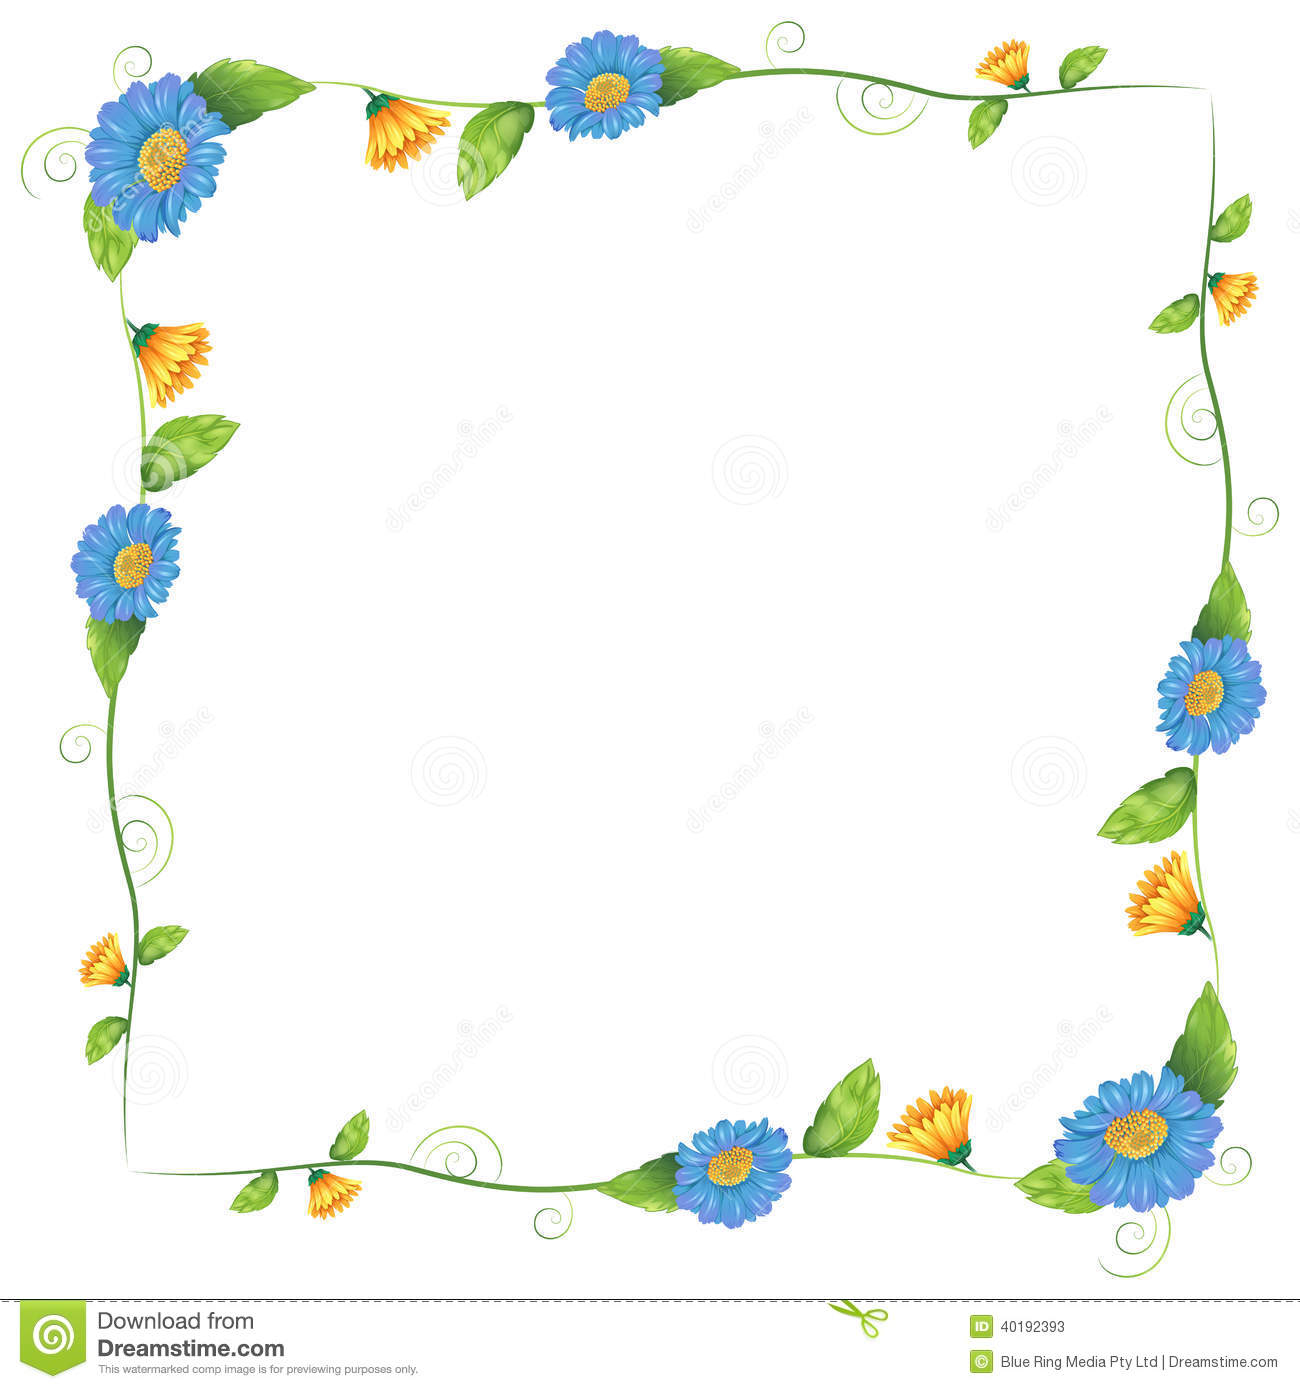 A Border Design Made Of Flowering Plants Stock Vector